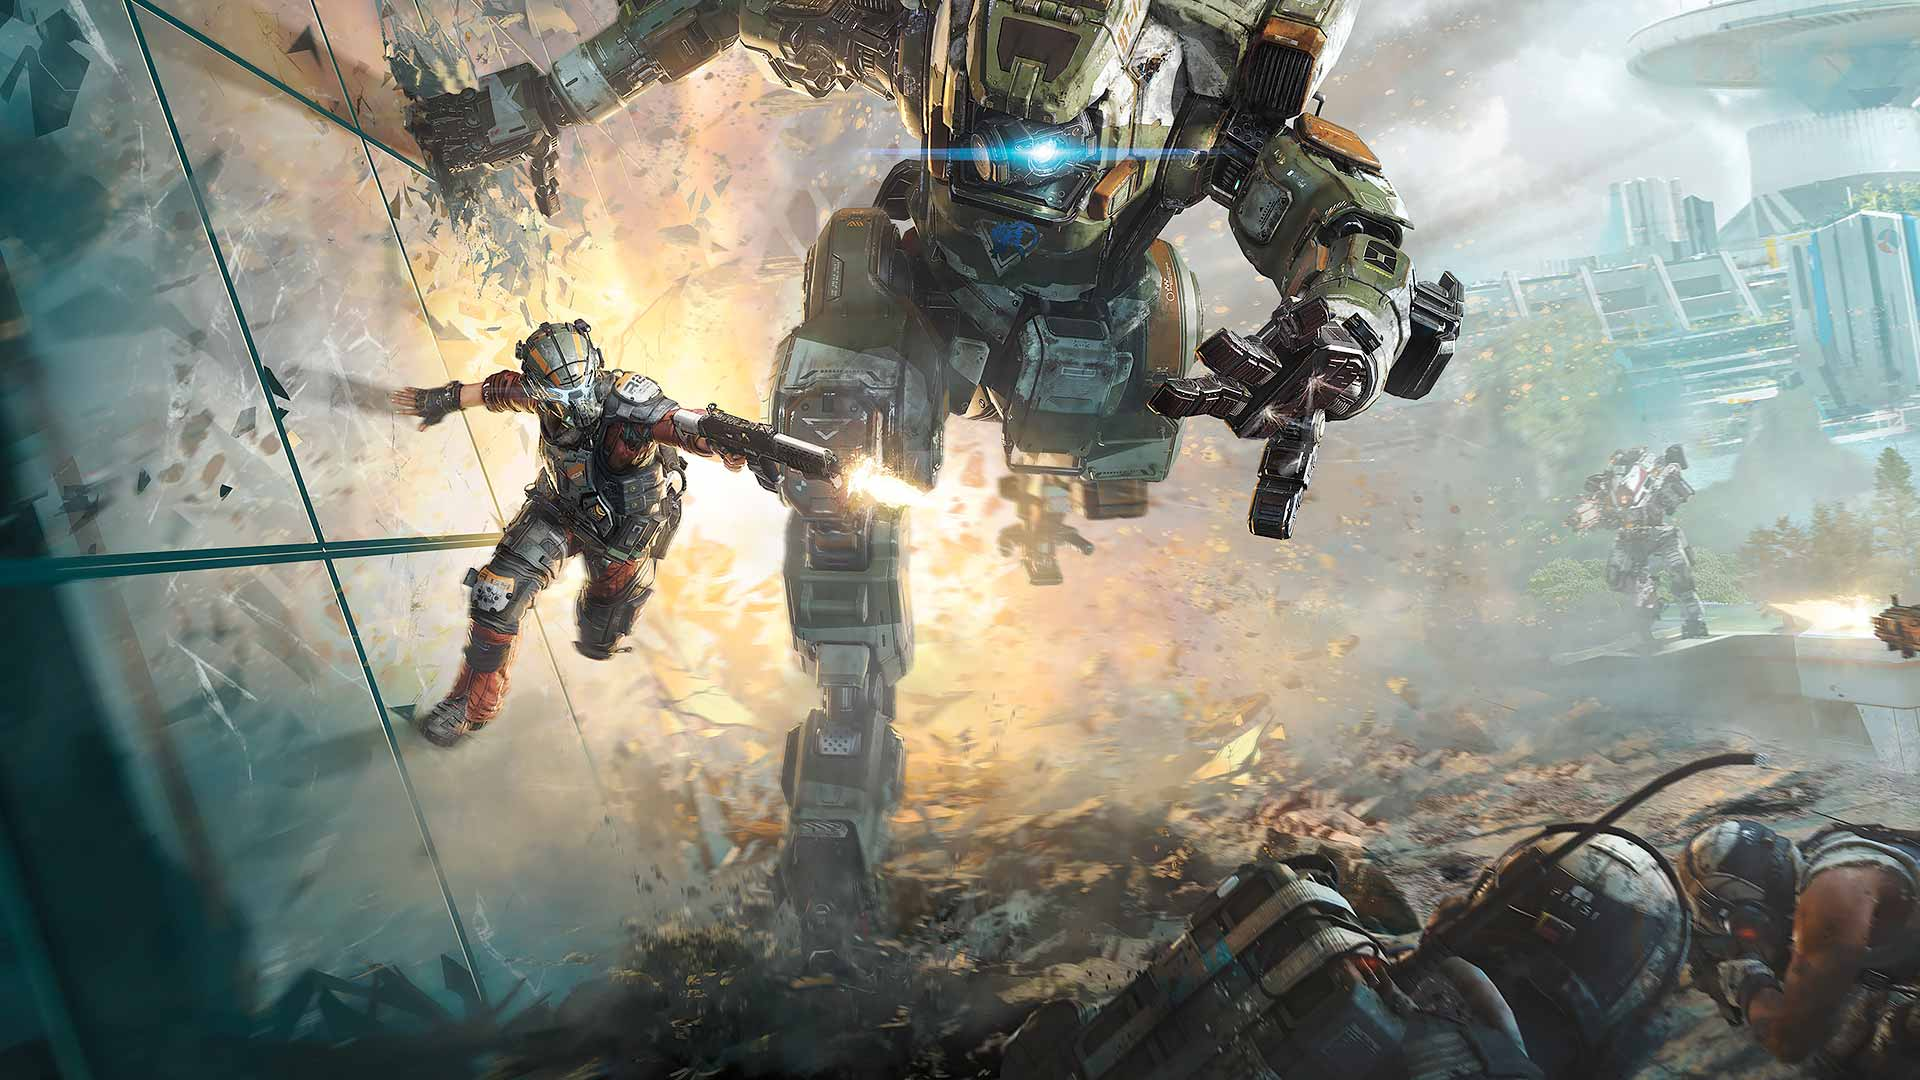 Fall Out 4 Hd Wallpapers Titanfall 2 Review Clash Of The Titans Gamerspack